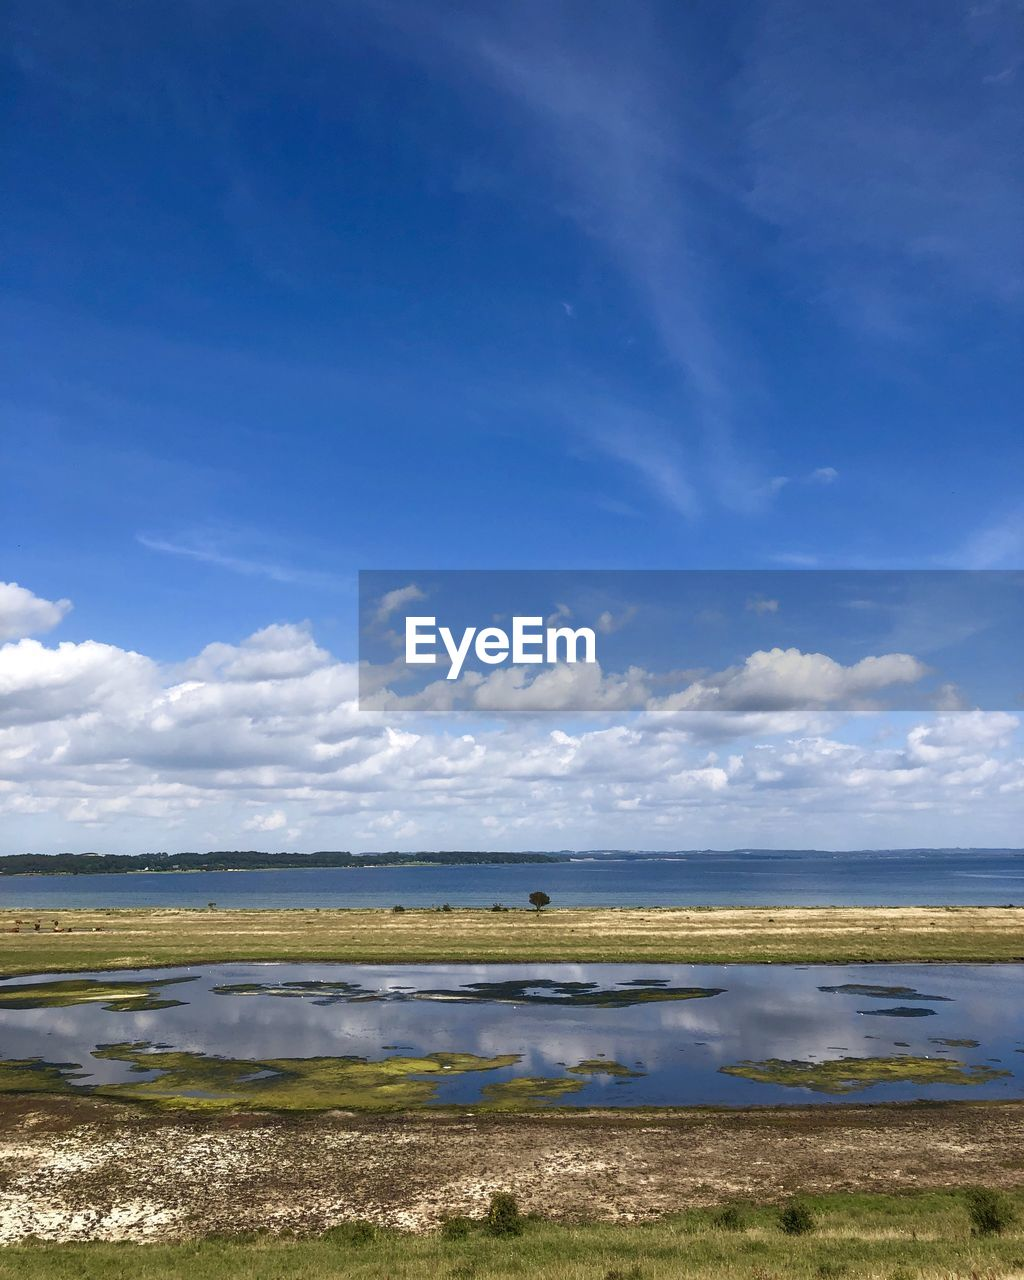 water, sky, cloud - sky, tranquil scene, scenics - nature, beauty in nature, tranquility, land, grass, beach, nature, day, sea, non-urban scene, horizon, blue, no people, plant, horizon over water, outdoors